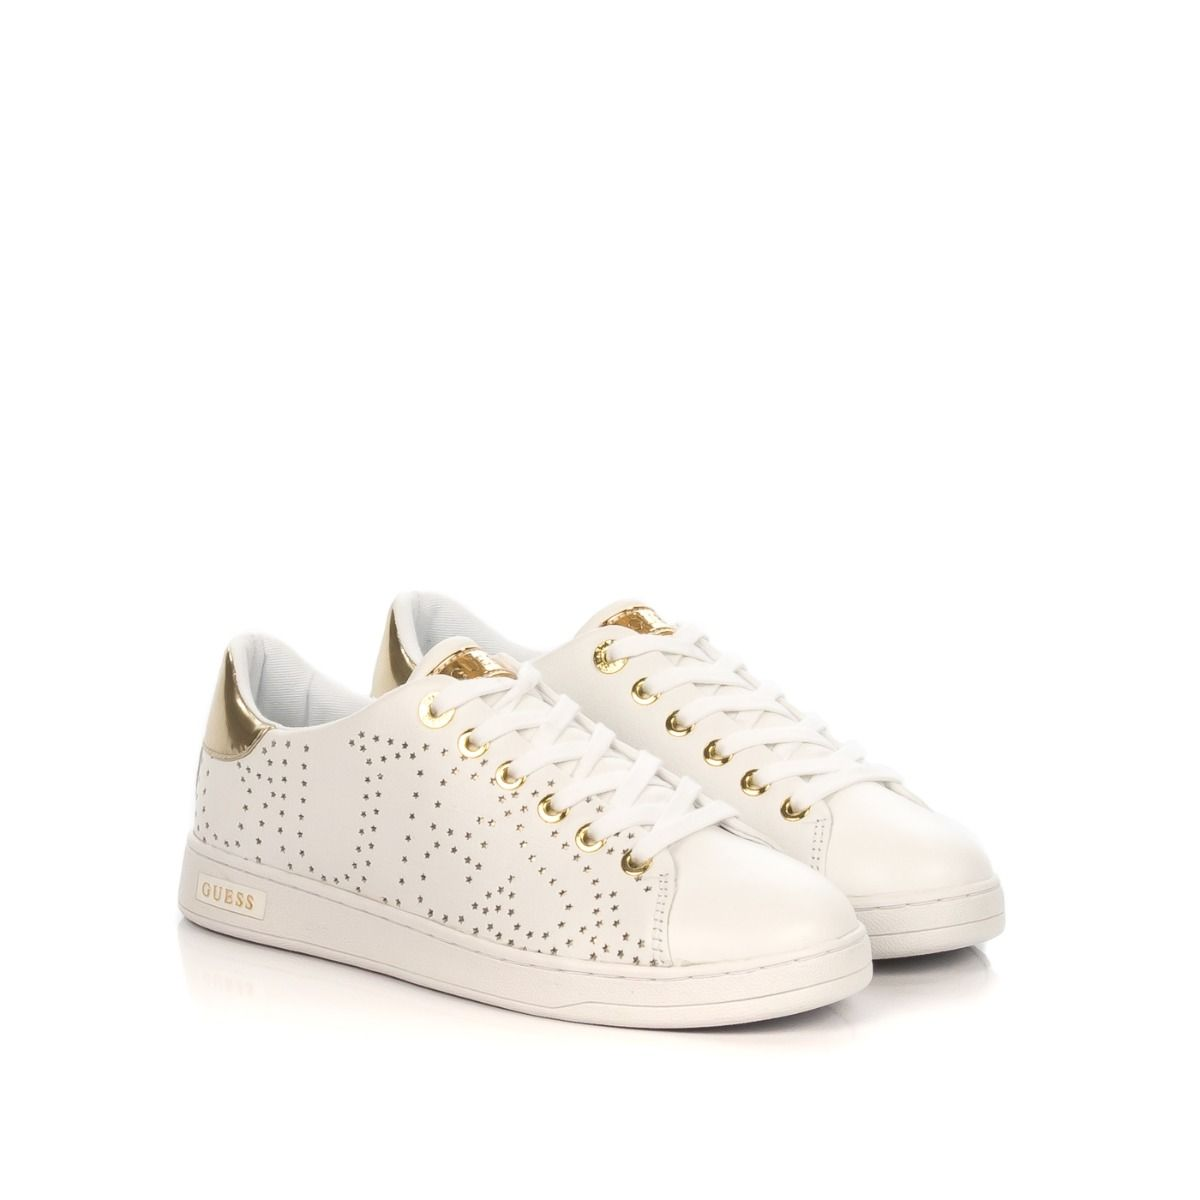 Sneakers Bianca Lea12 Con Donna Stelline guess Similpelle Fl5crt In j4SAc5RLq3